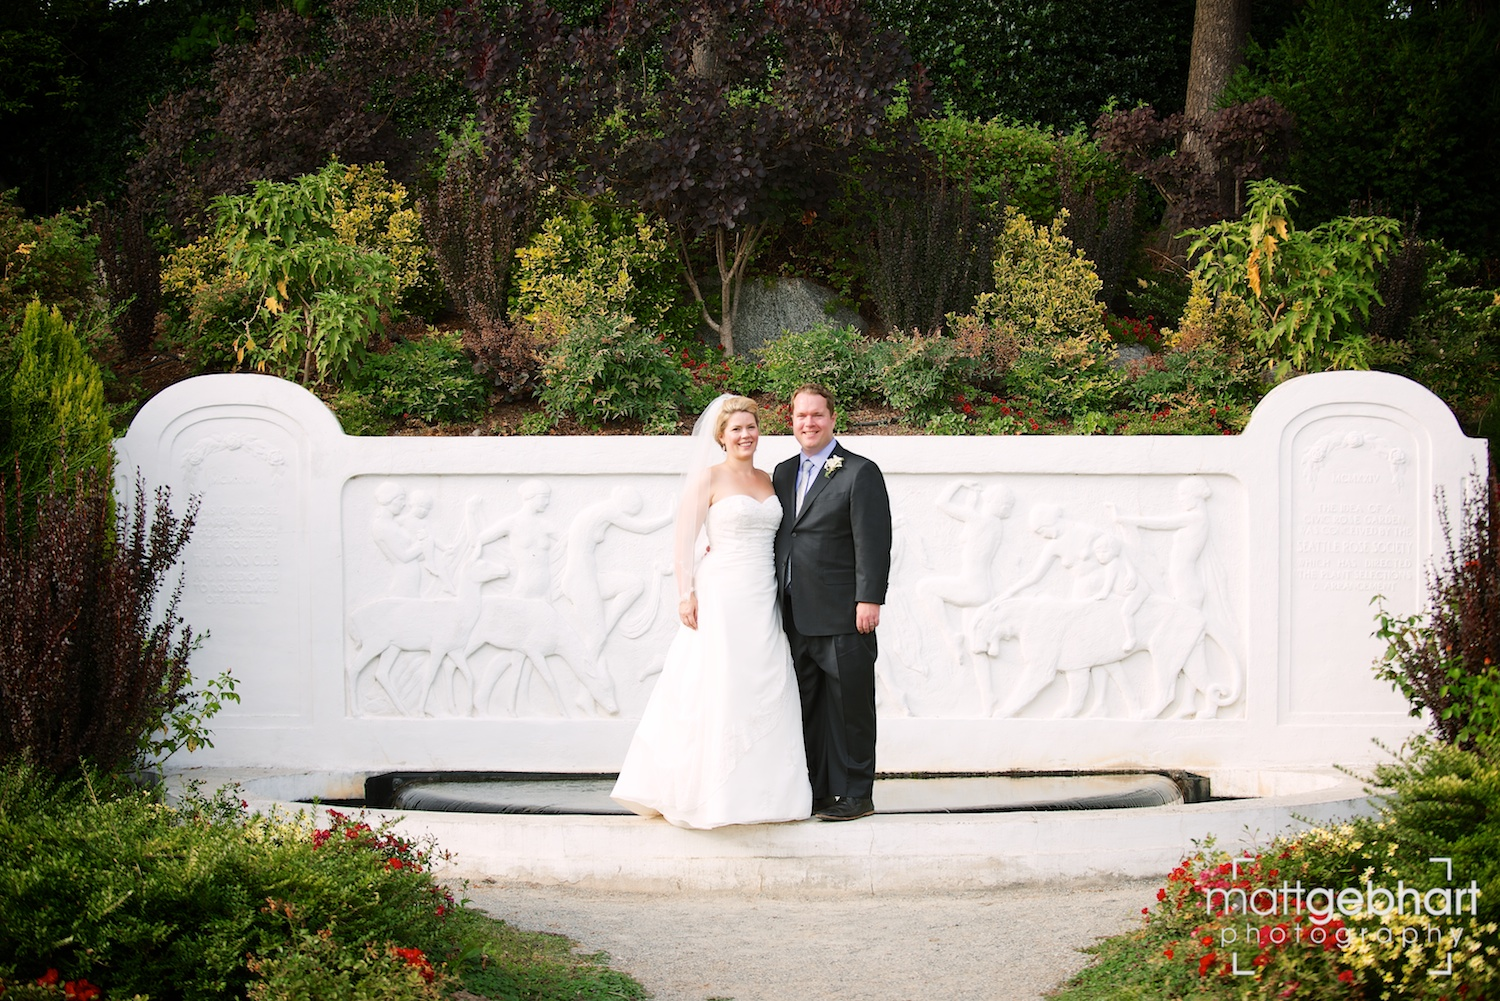 Seattle Rose Garden wedding  026.jpg